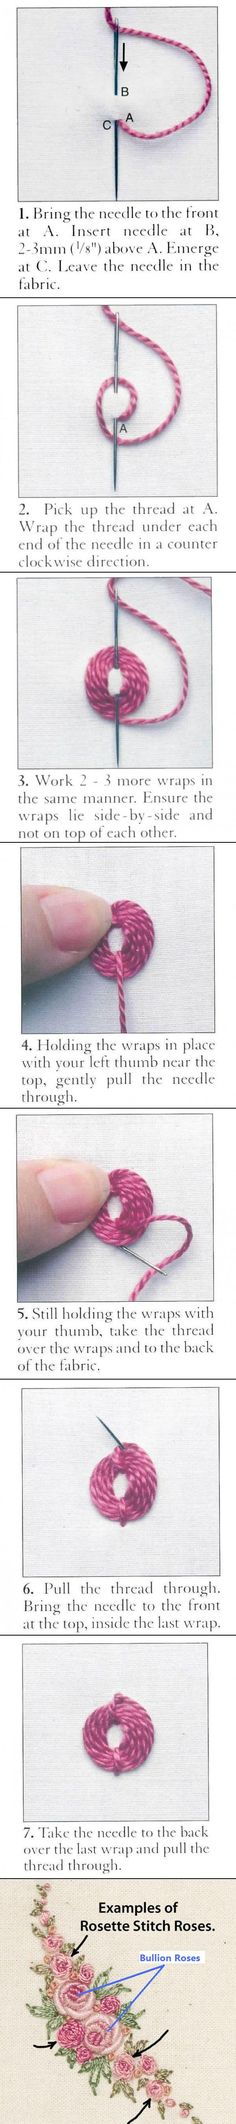 Rosette stitch tutorial. Shown in a mixed bouquet of rosette stitch roses and…